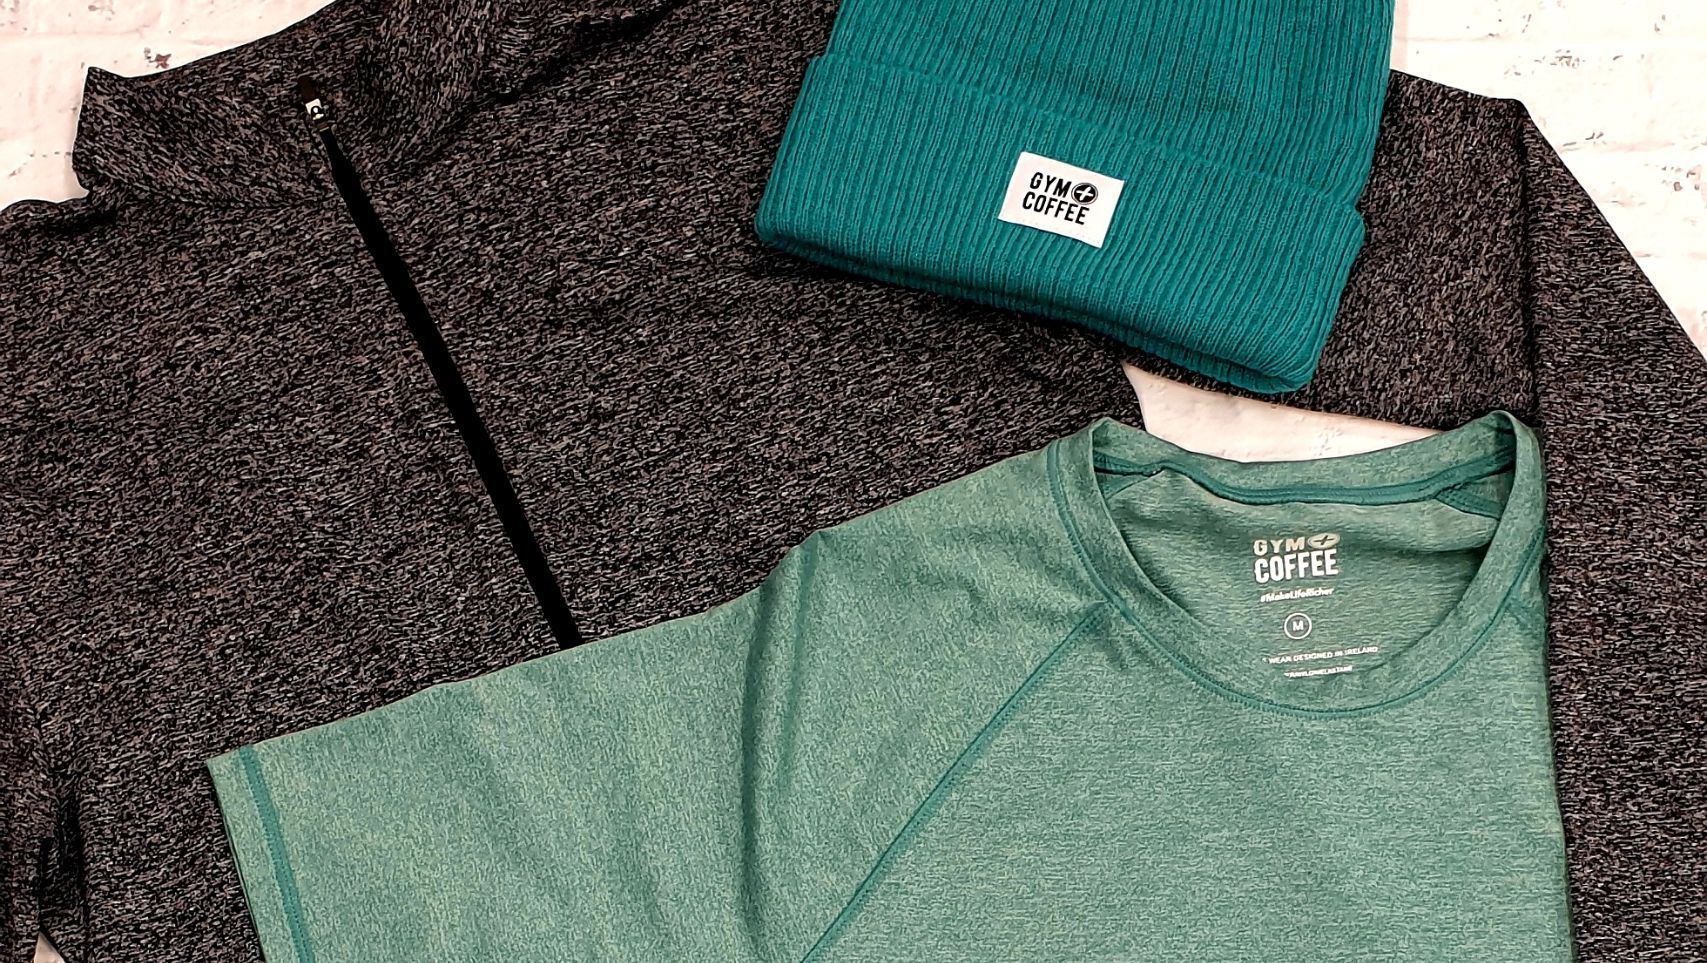 Gym+Coffee Gifts For Him